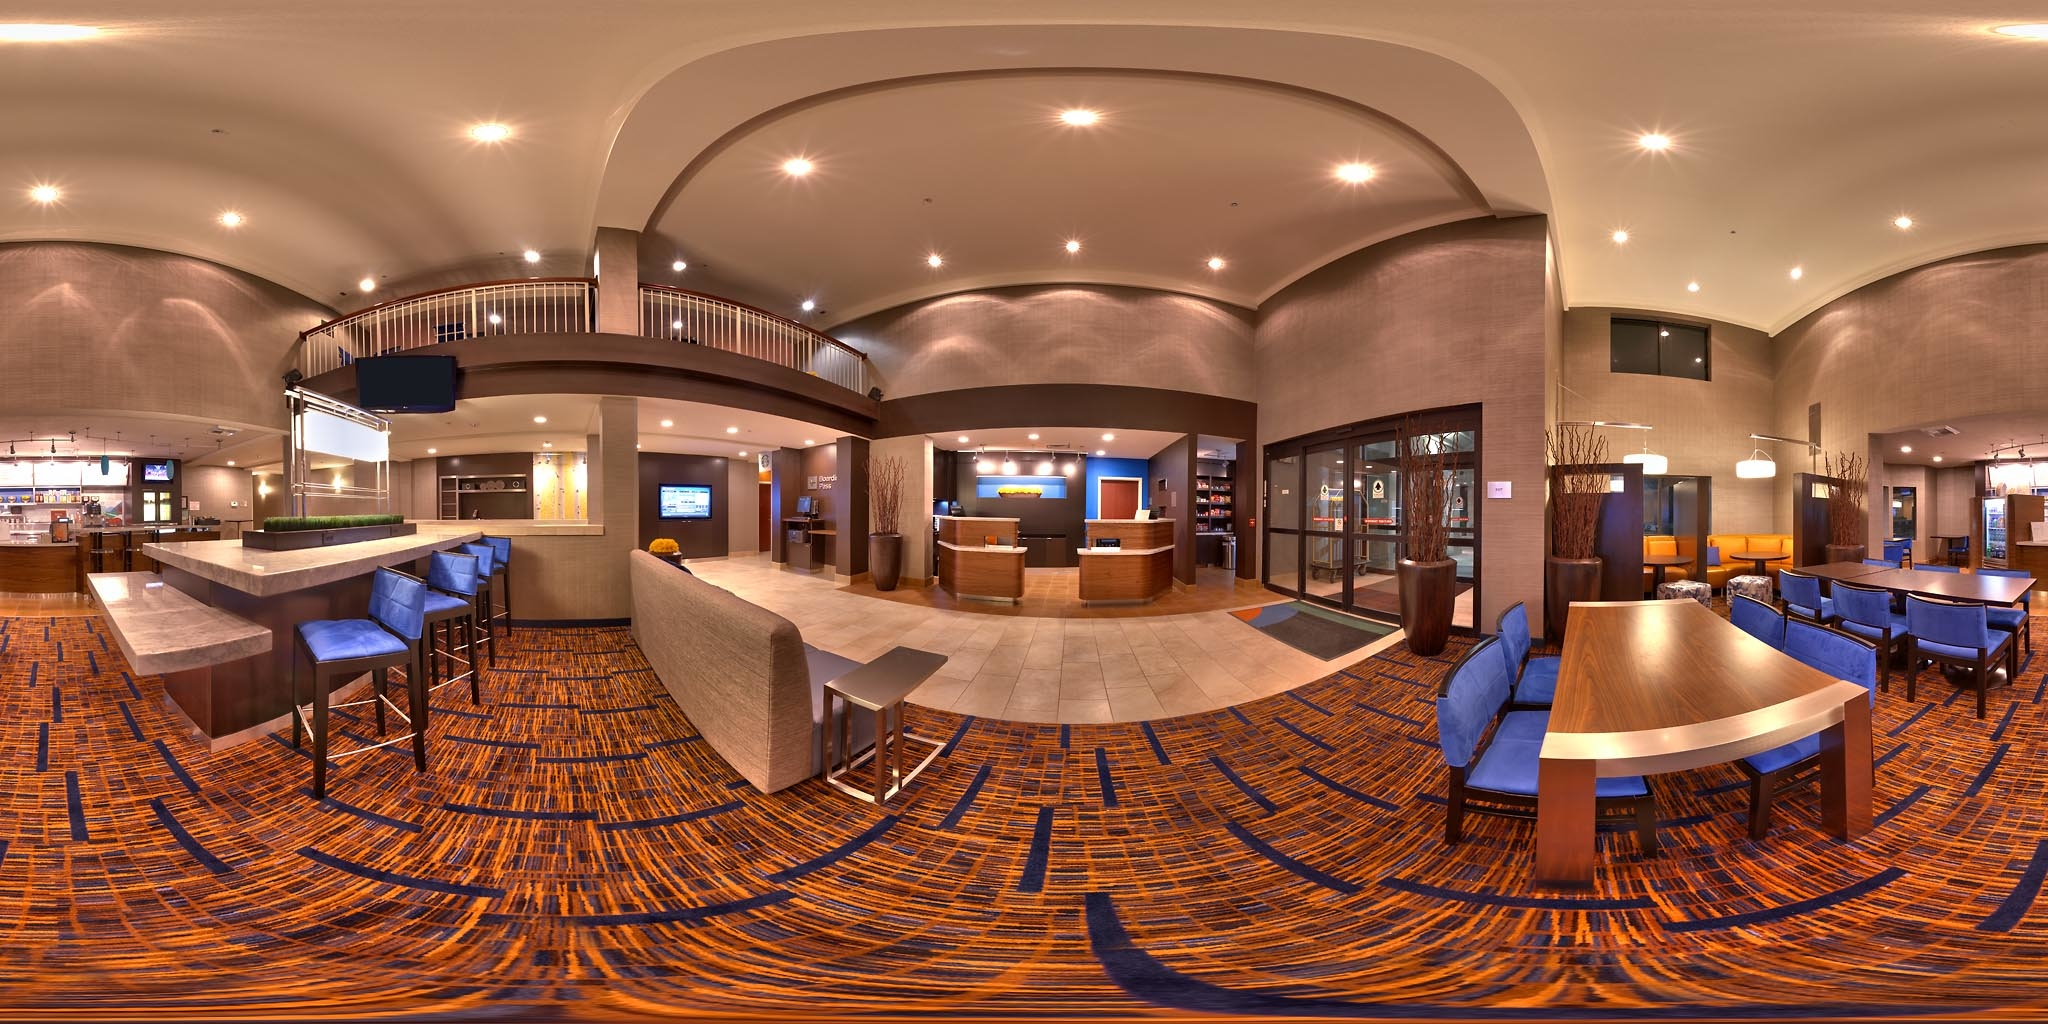 Courtyard by Marriott Provo image 0